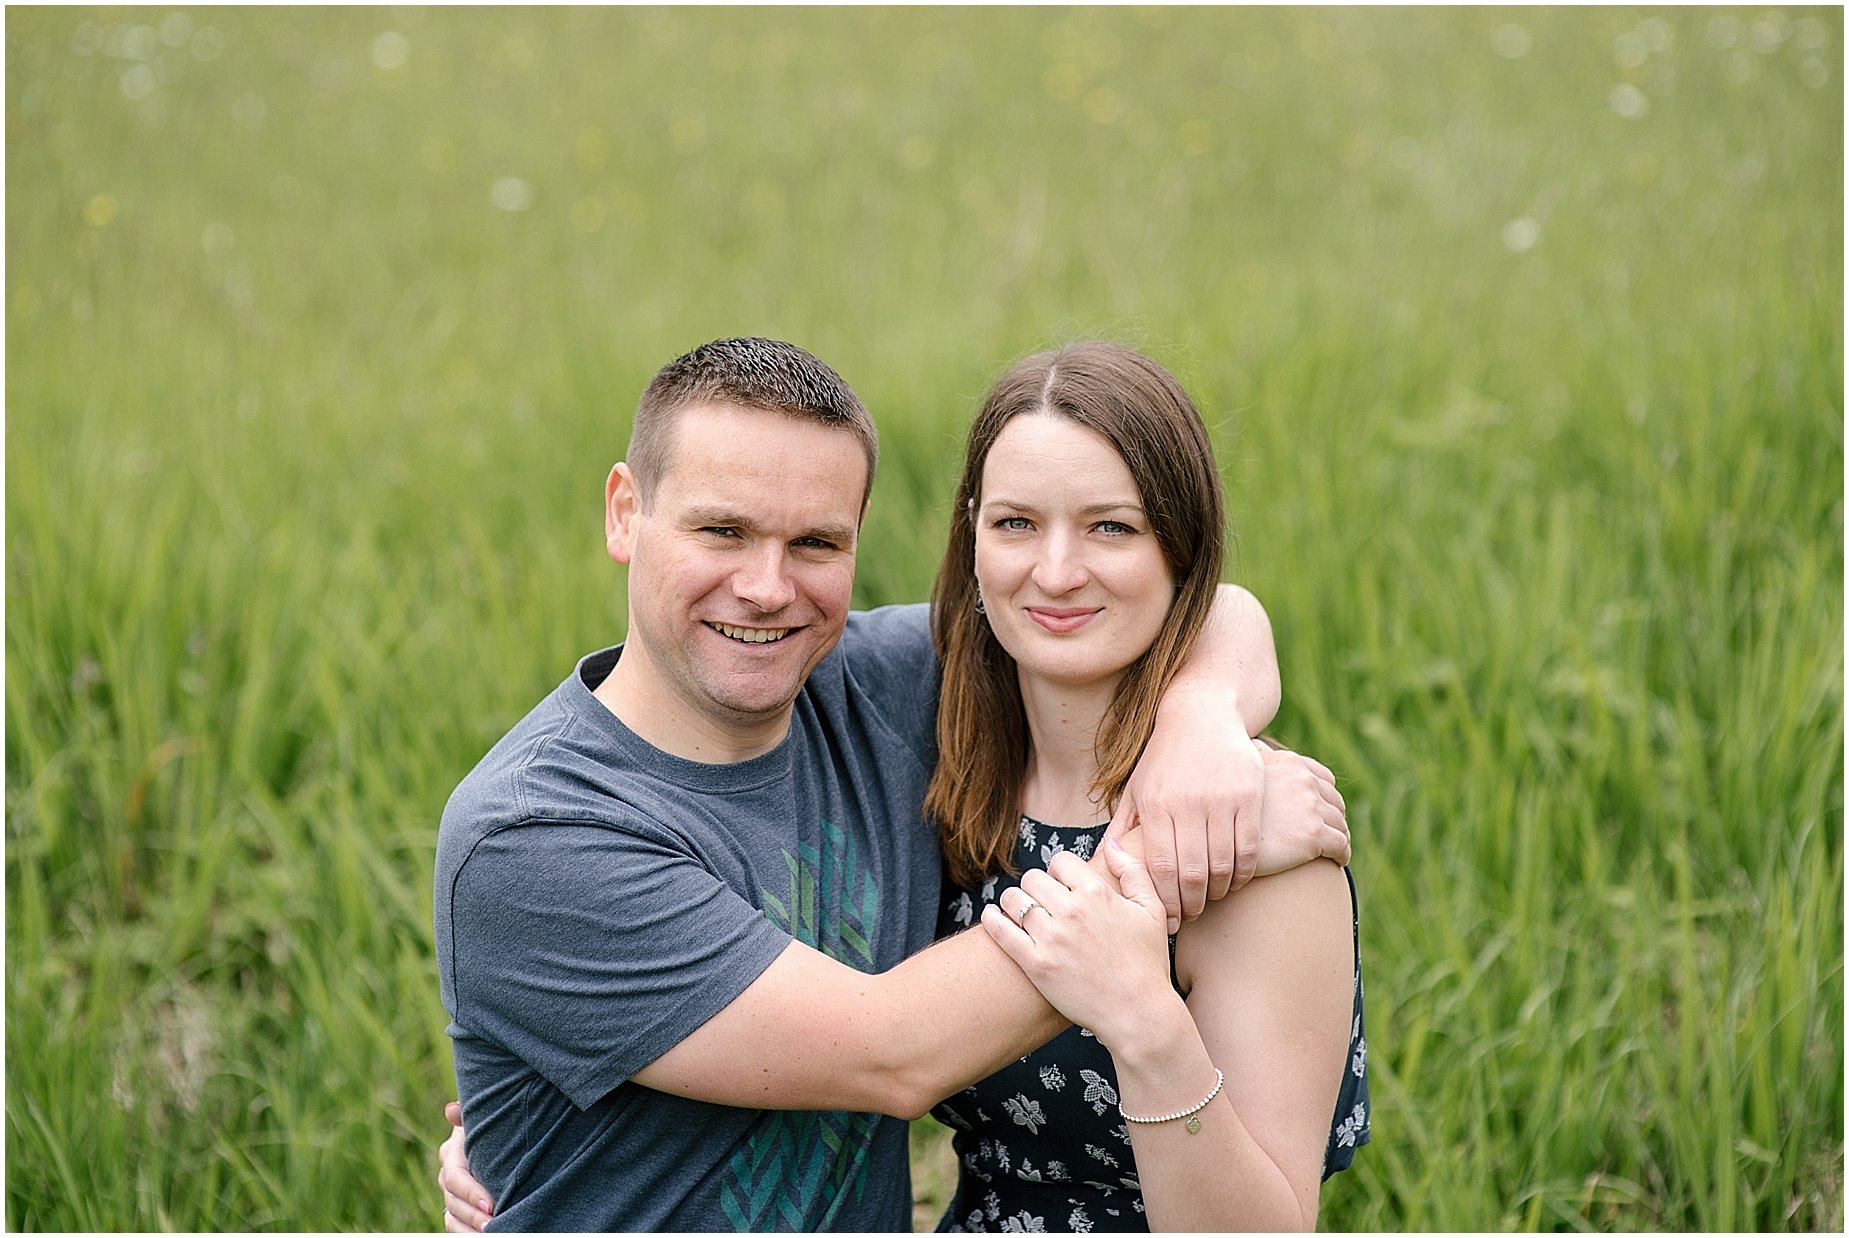 castle-archdale-pre-wedding-jude-browne-photography_0018.jpg